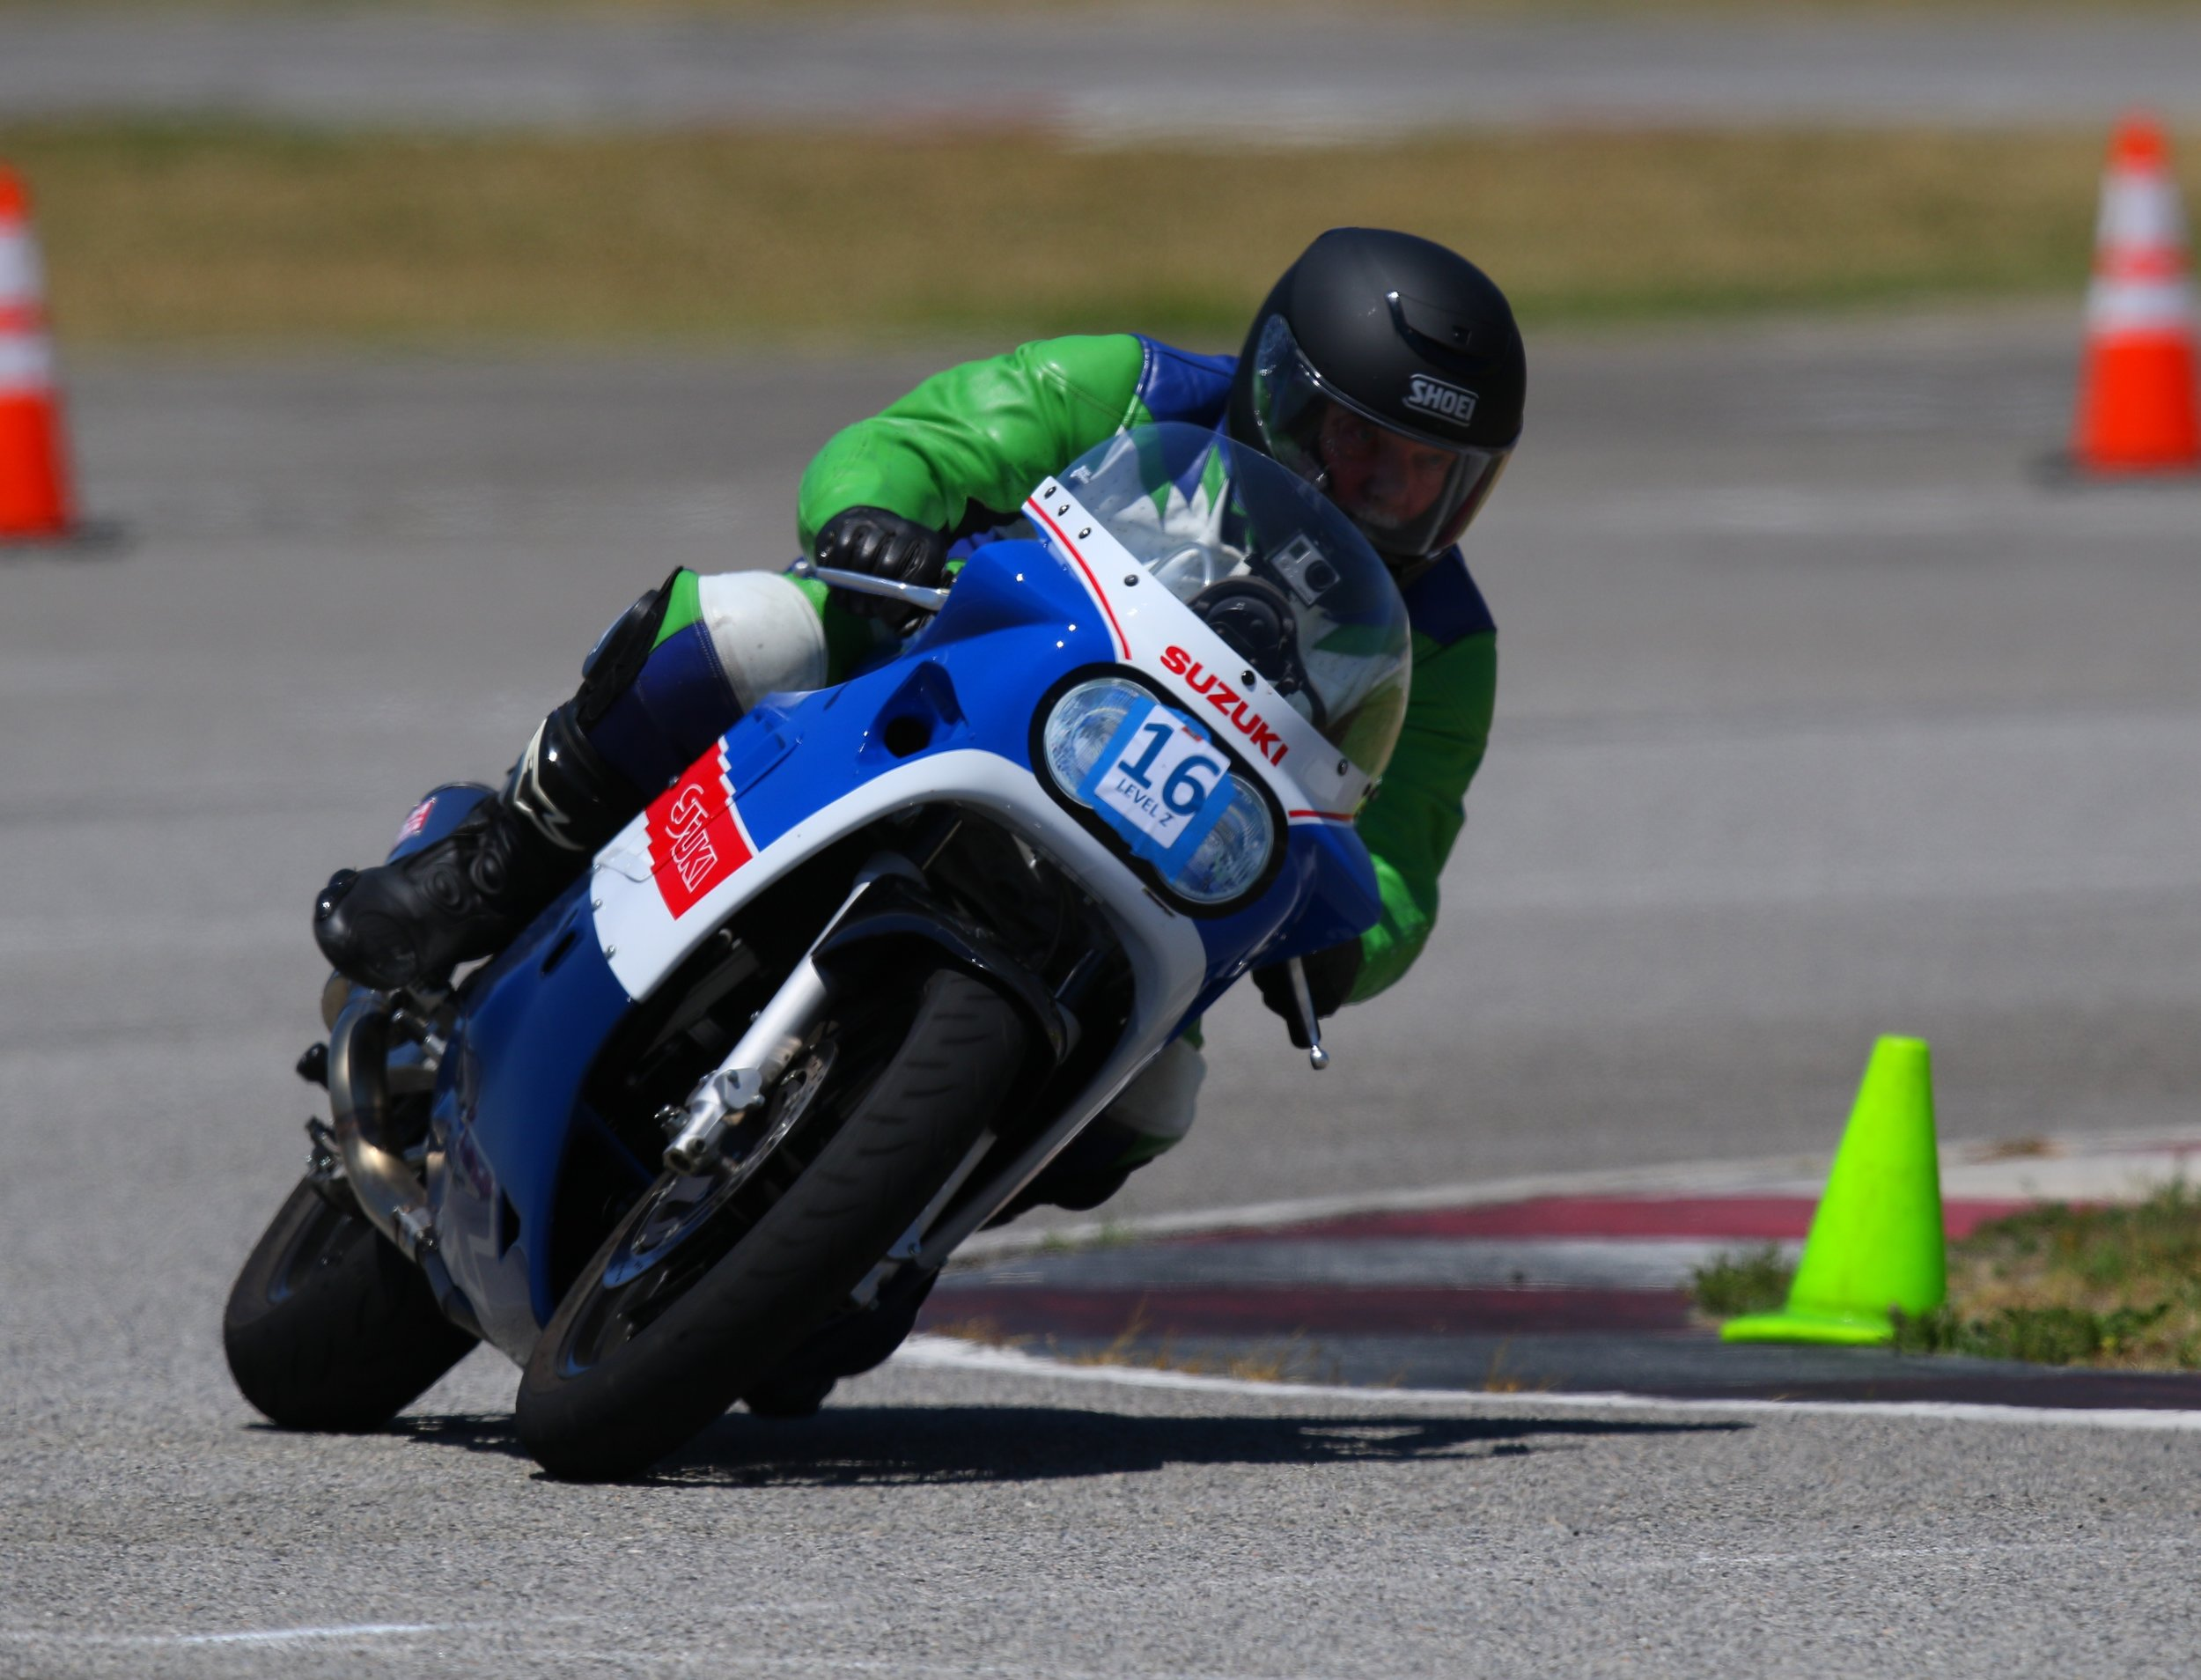 Tate Casey on the Suzuki GSX-R750 at Auto Club Speedway in CA